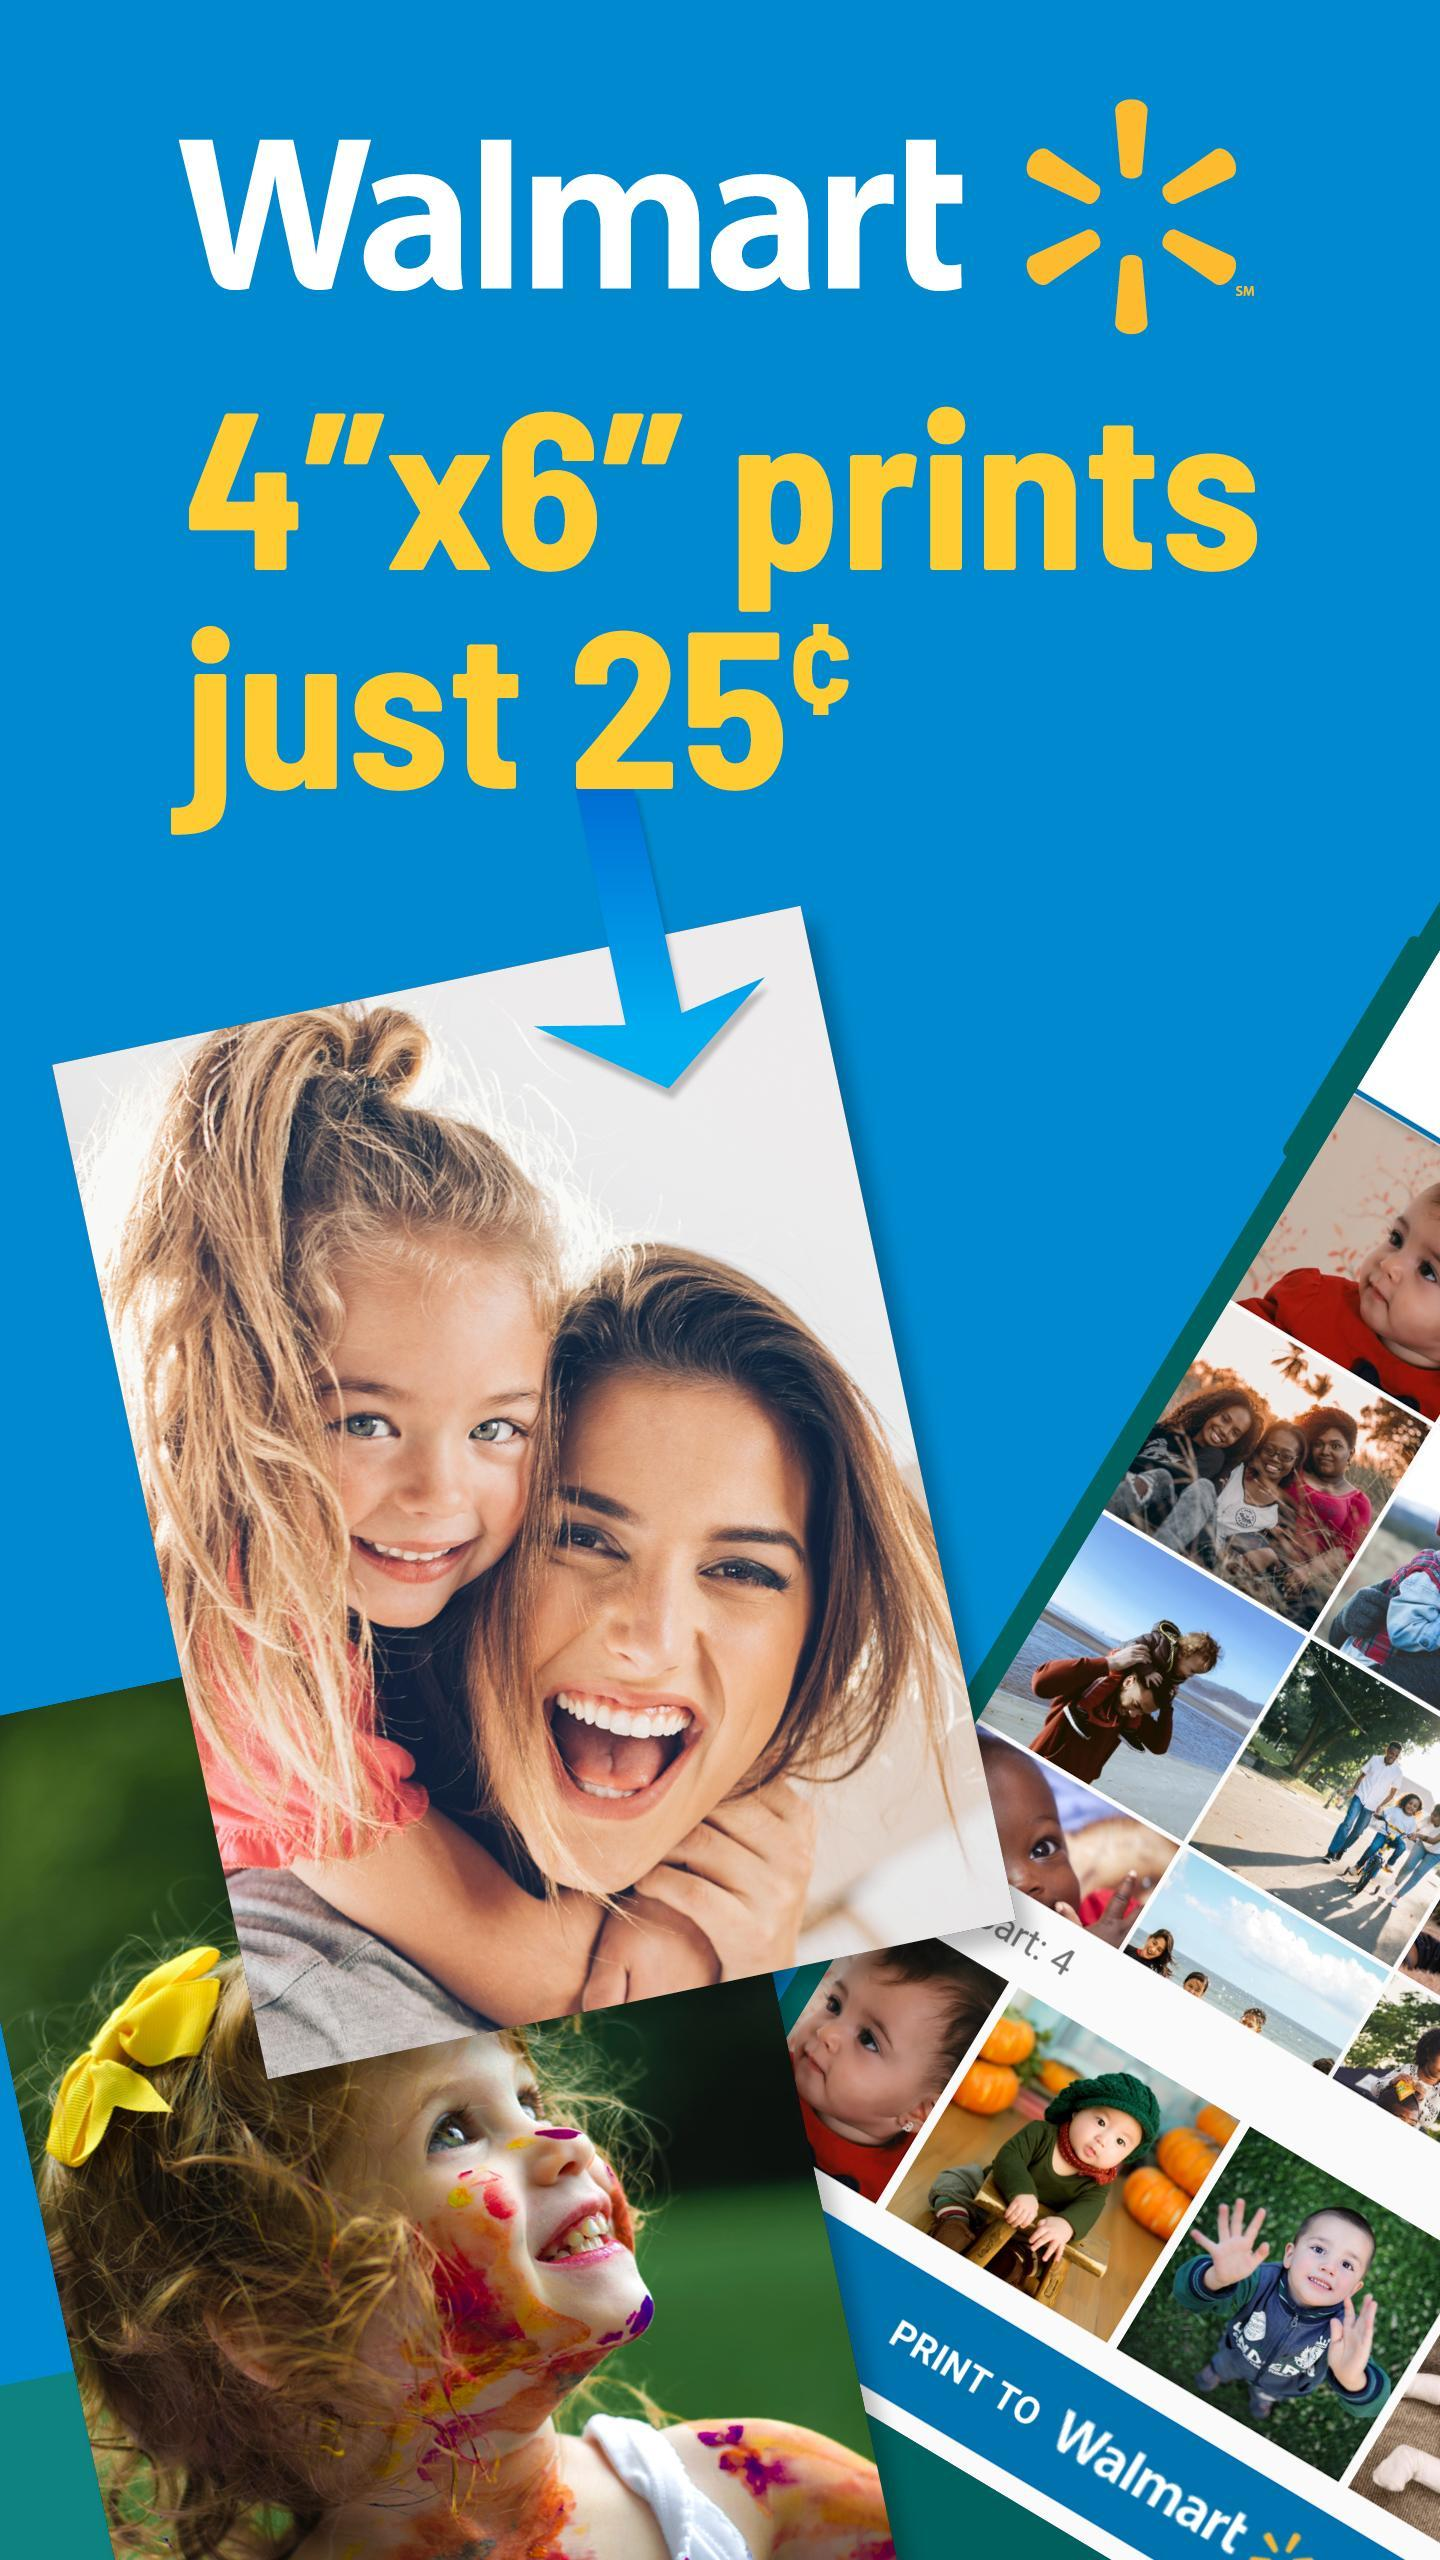 Photo Prints+ 1 Hour Walmart Photo Prints for Android - APK